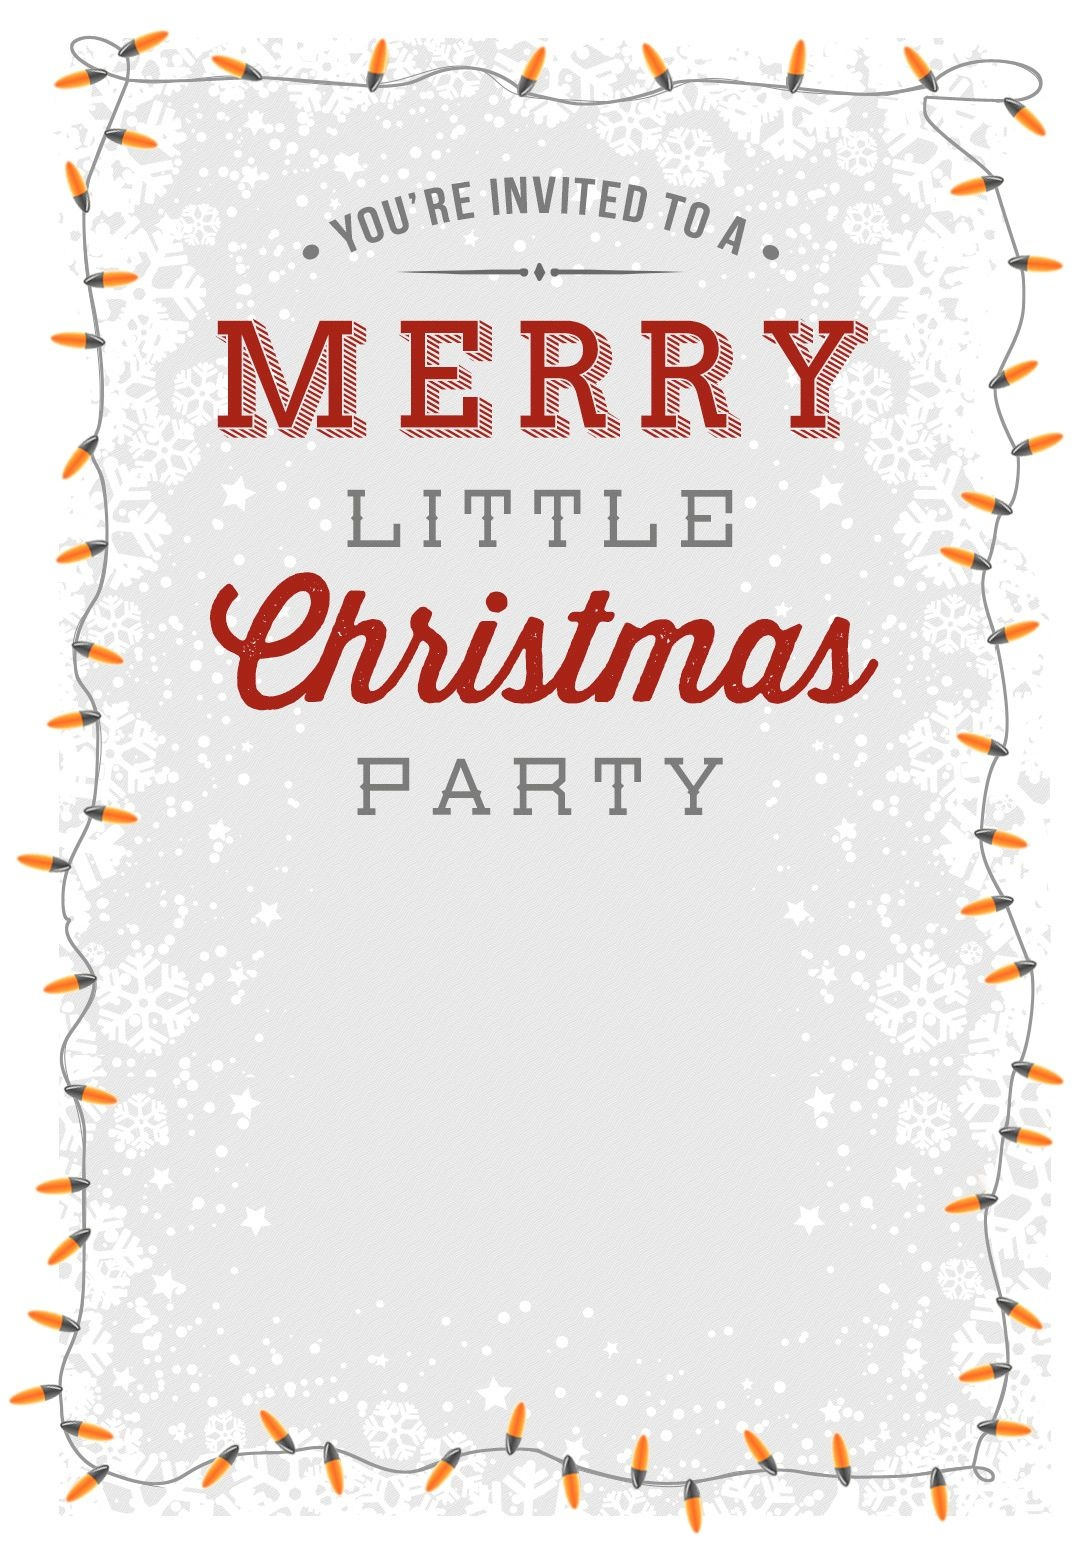 A Merry Little Party - Free Printable Christmas Invitation Template - Christmas Party Invitation Templates Free Printable